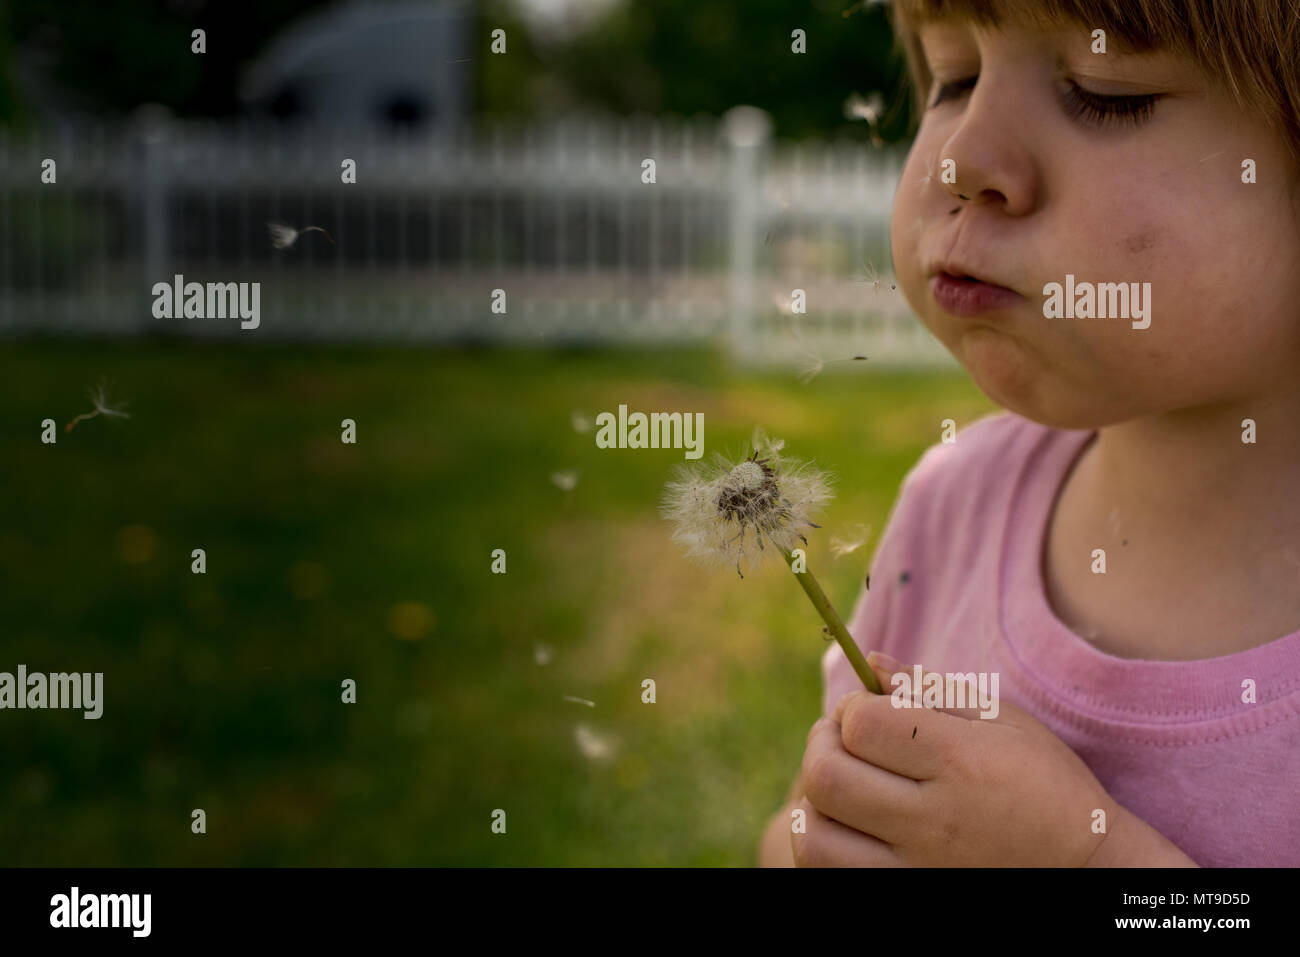 A toddler girld blows on a dandelion in the spring. - Stock Image